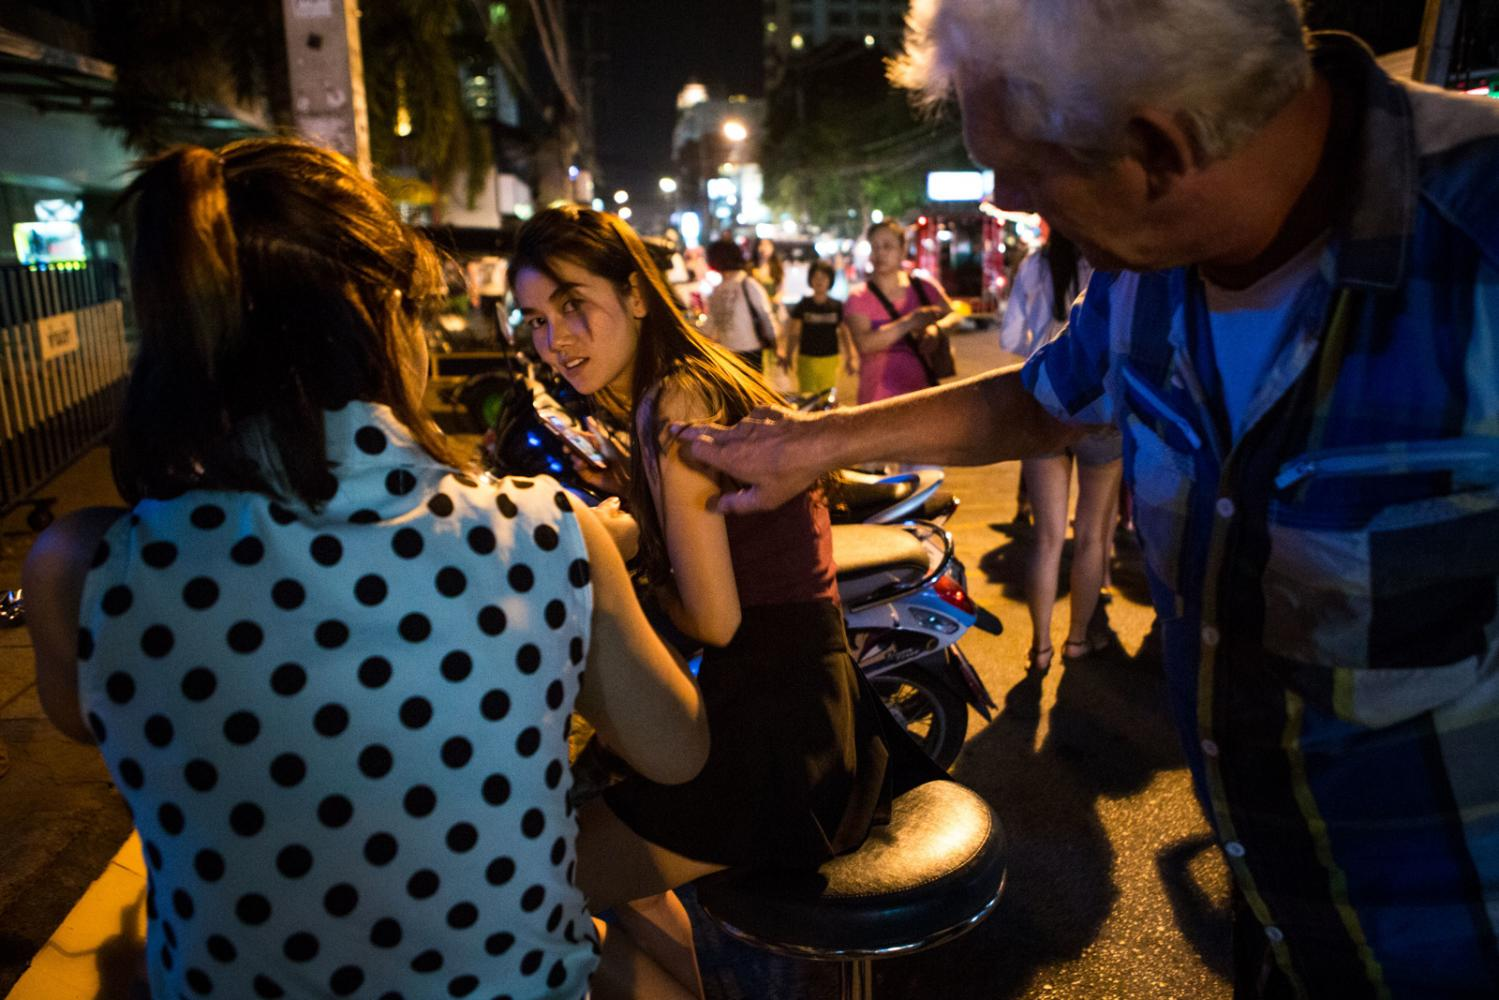 A tourist harasses a woman outside of a bar in Chiang Mai, Thailand